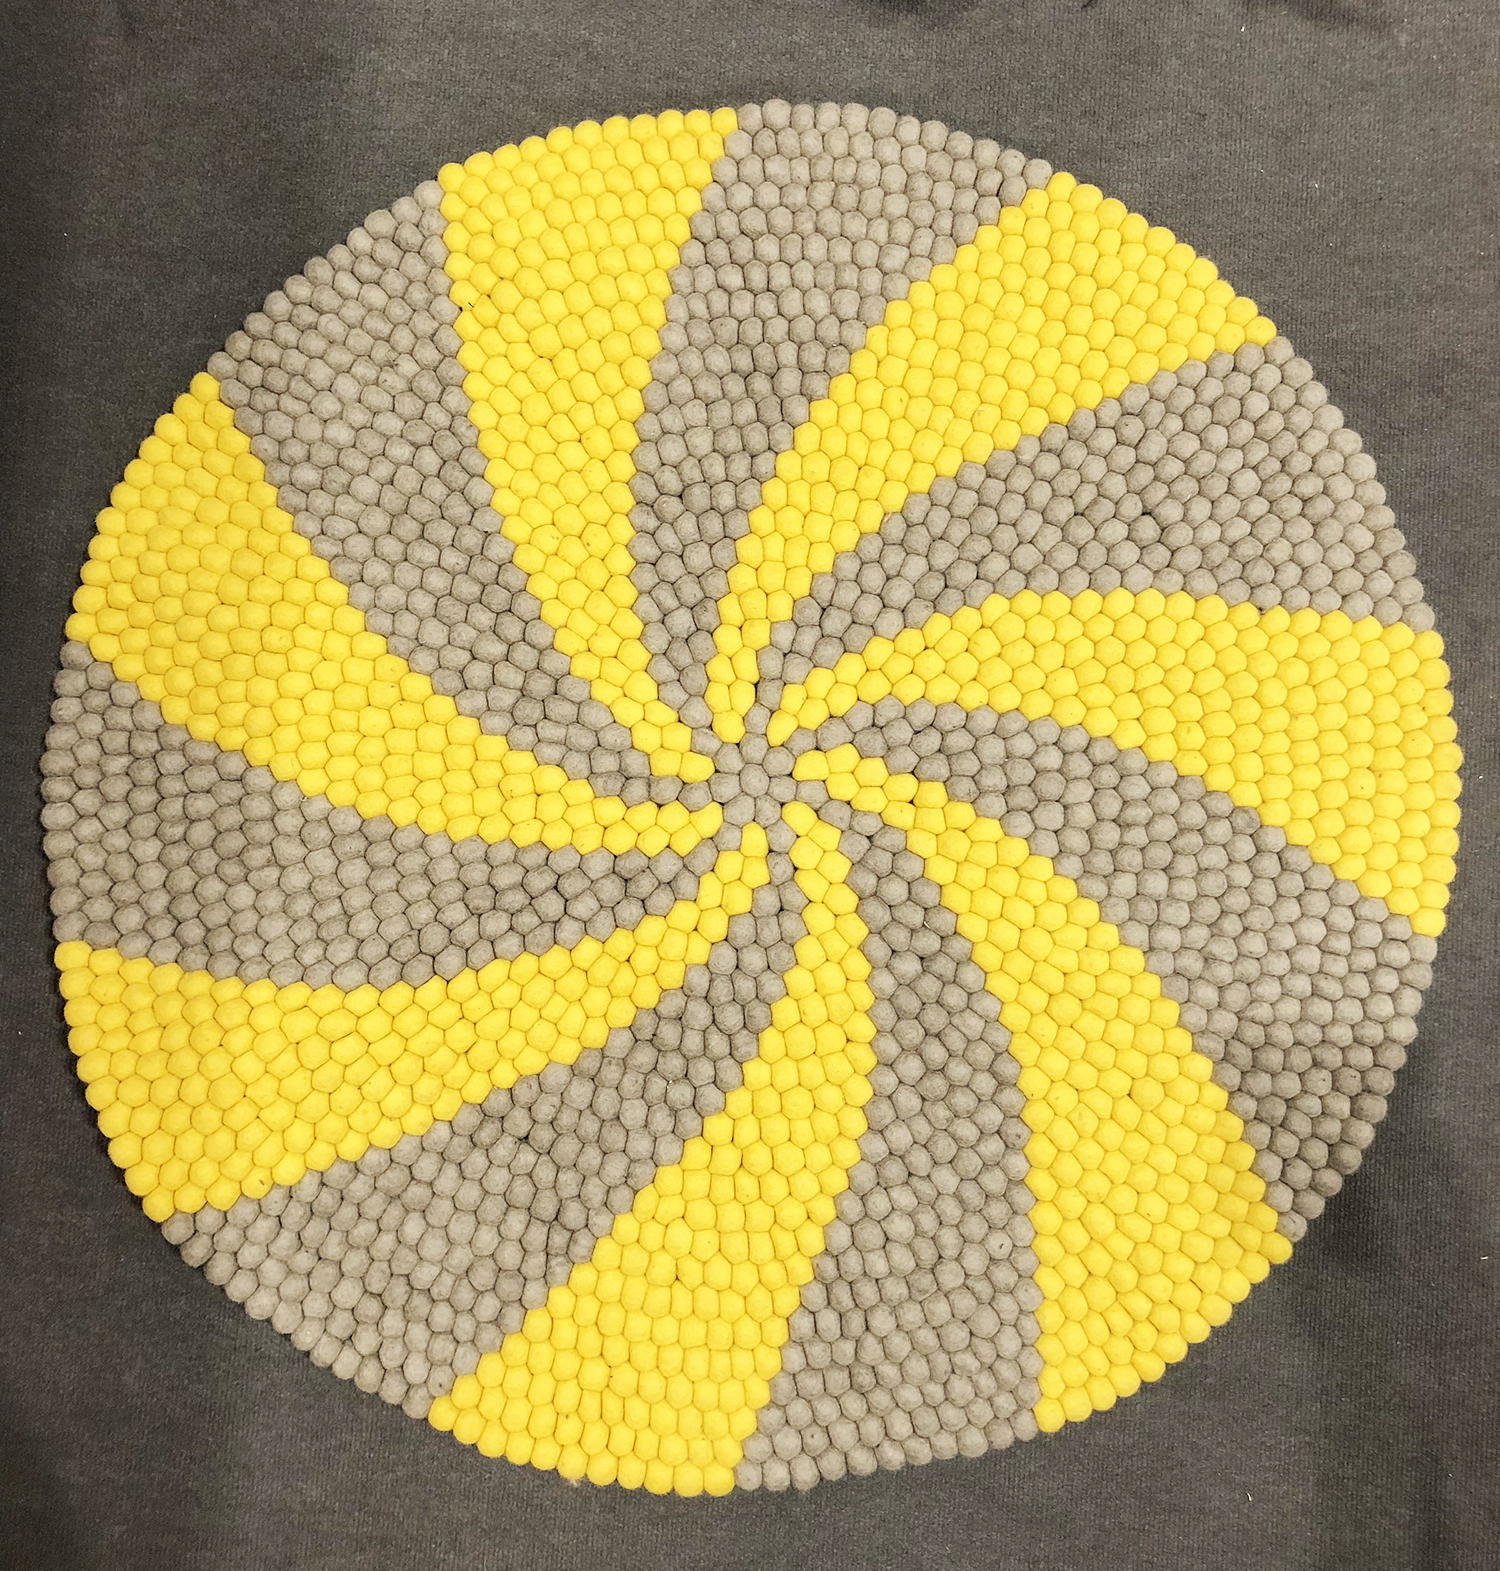 Candy Pop grey and yellow felt ball rug